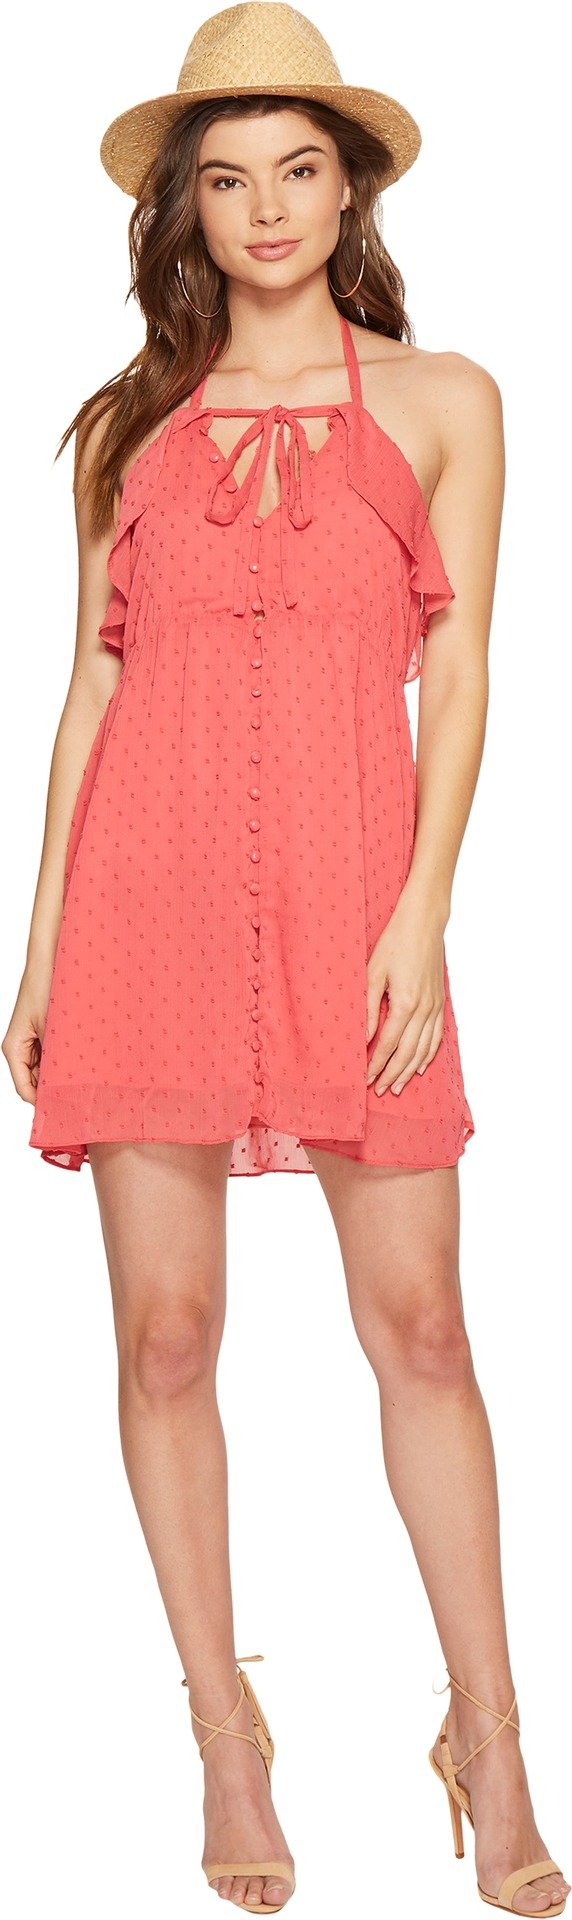 For Love & Lemons Women's Tarta Tank Dress, Flamingo, L